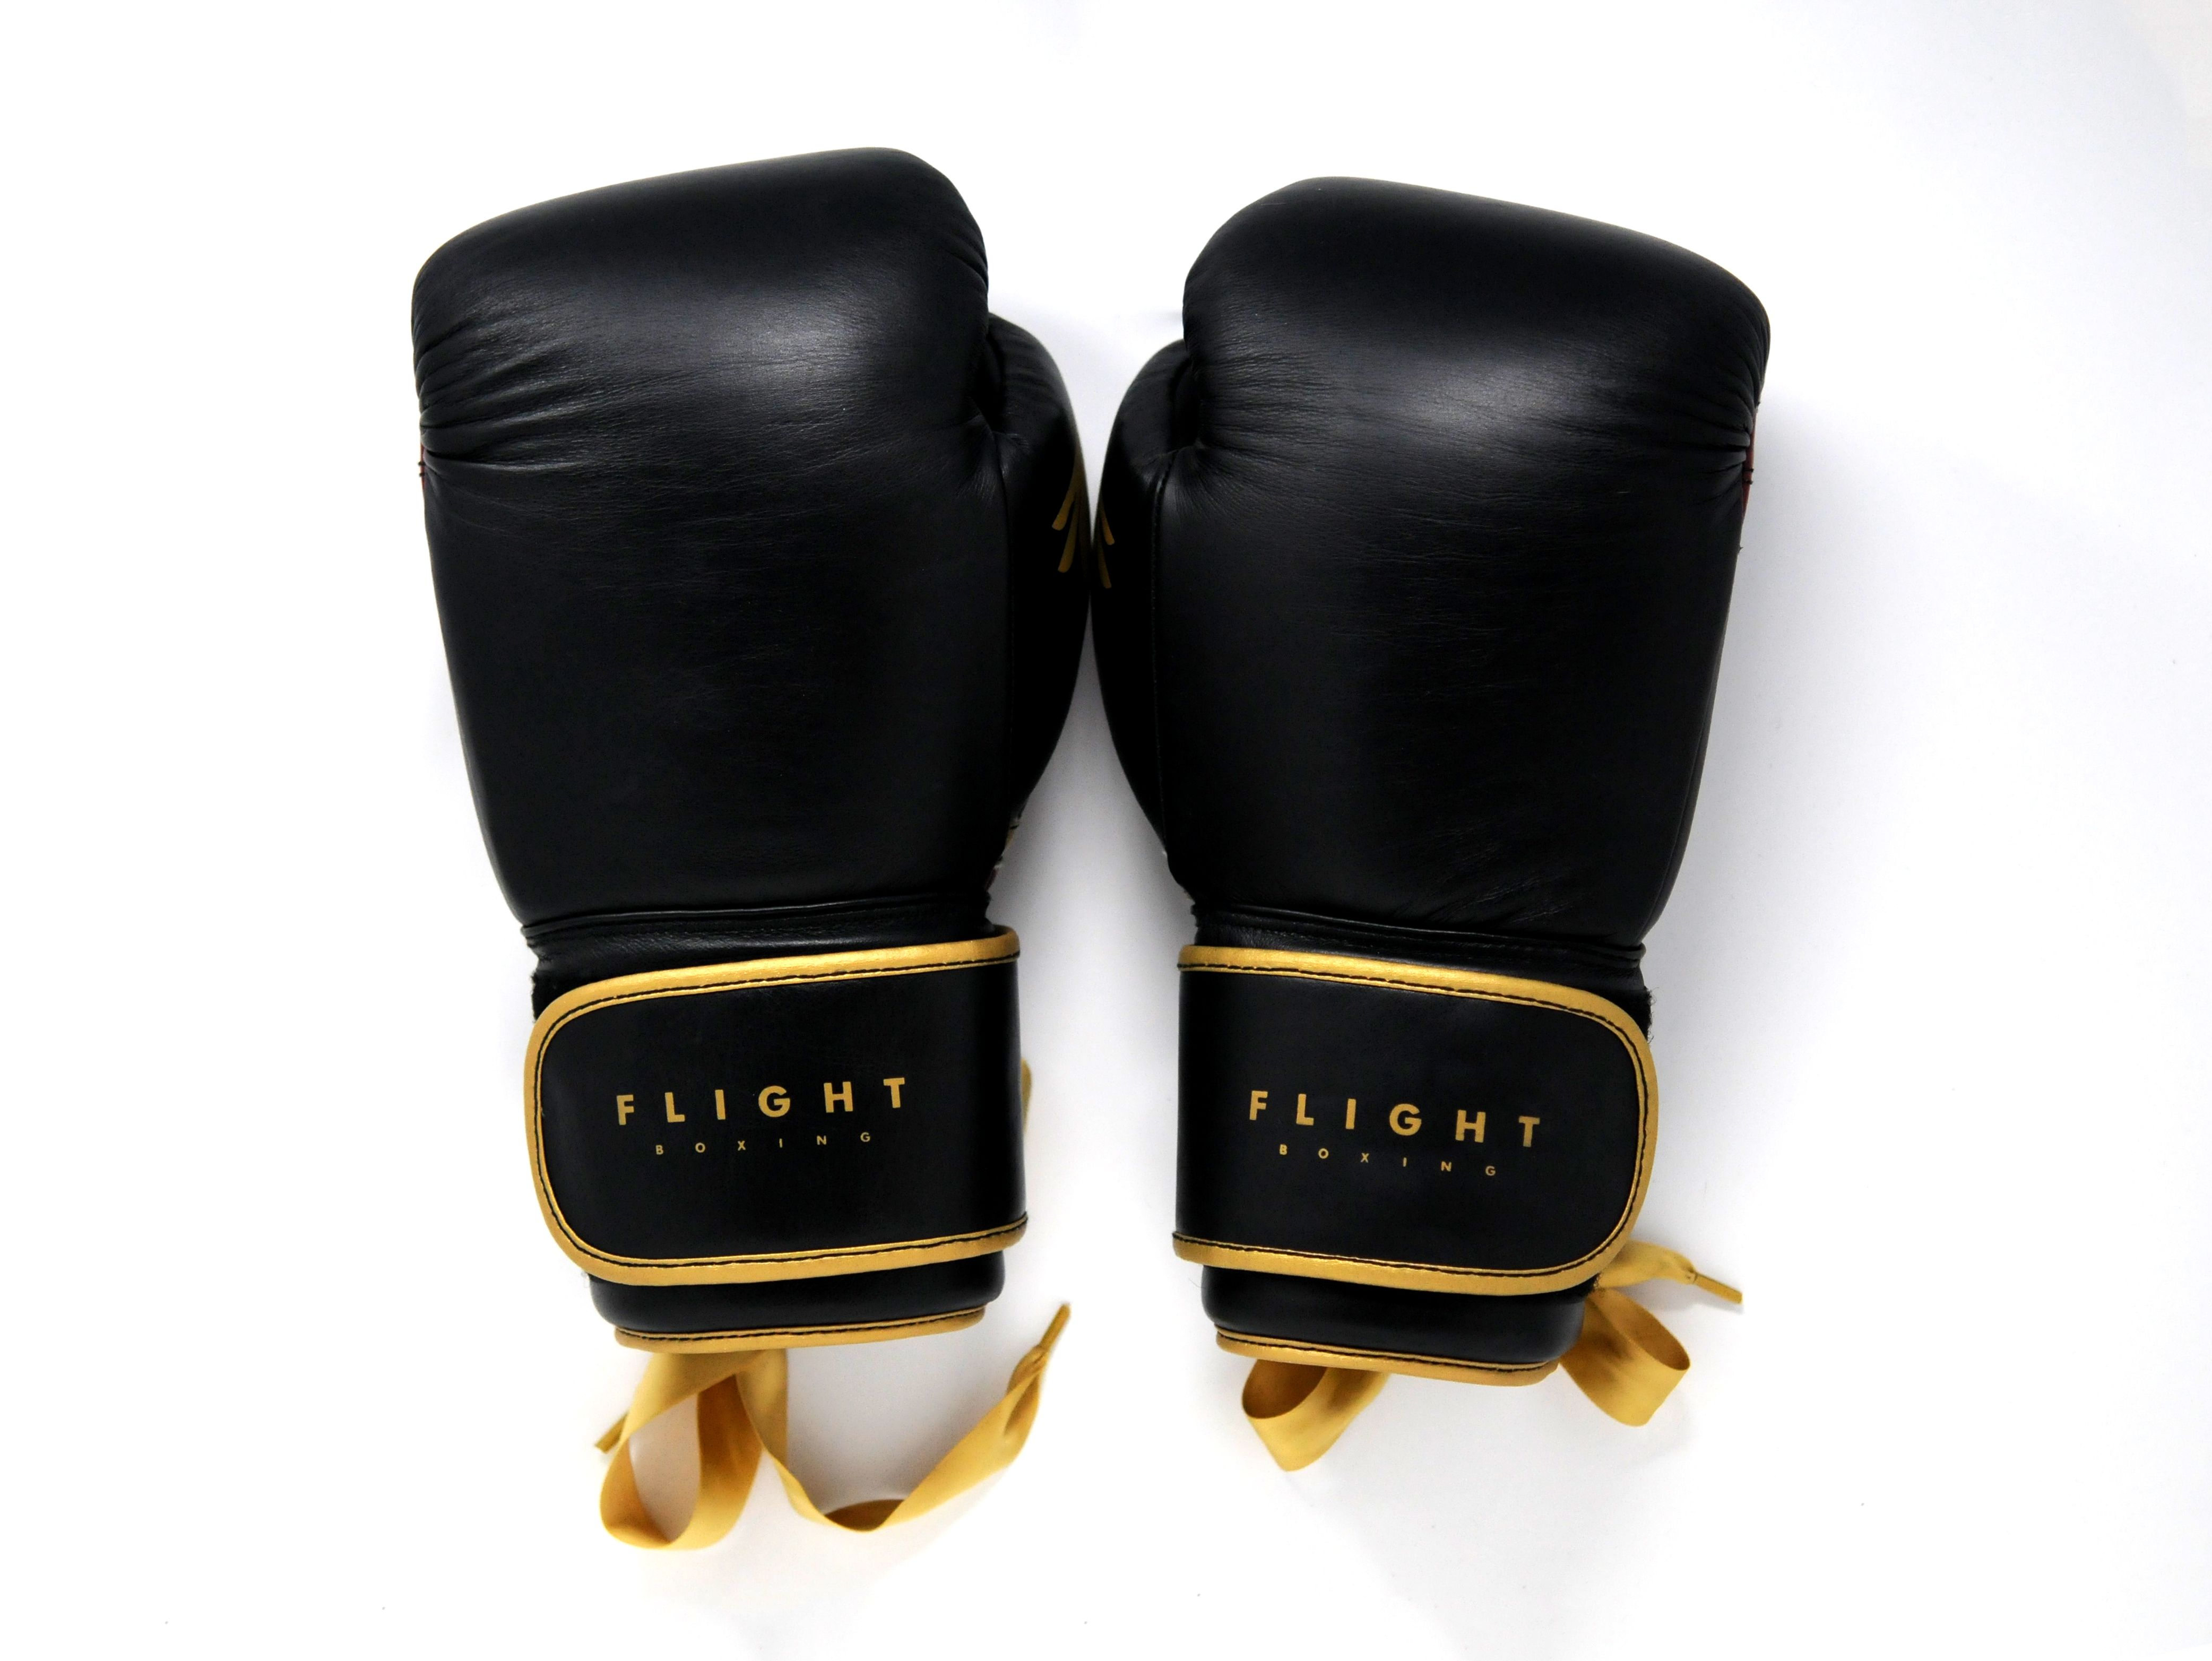 Womens Boxing Gloves The Sting Boxing Gloves Womens Leather Fashion Accessories Women Boxing